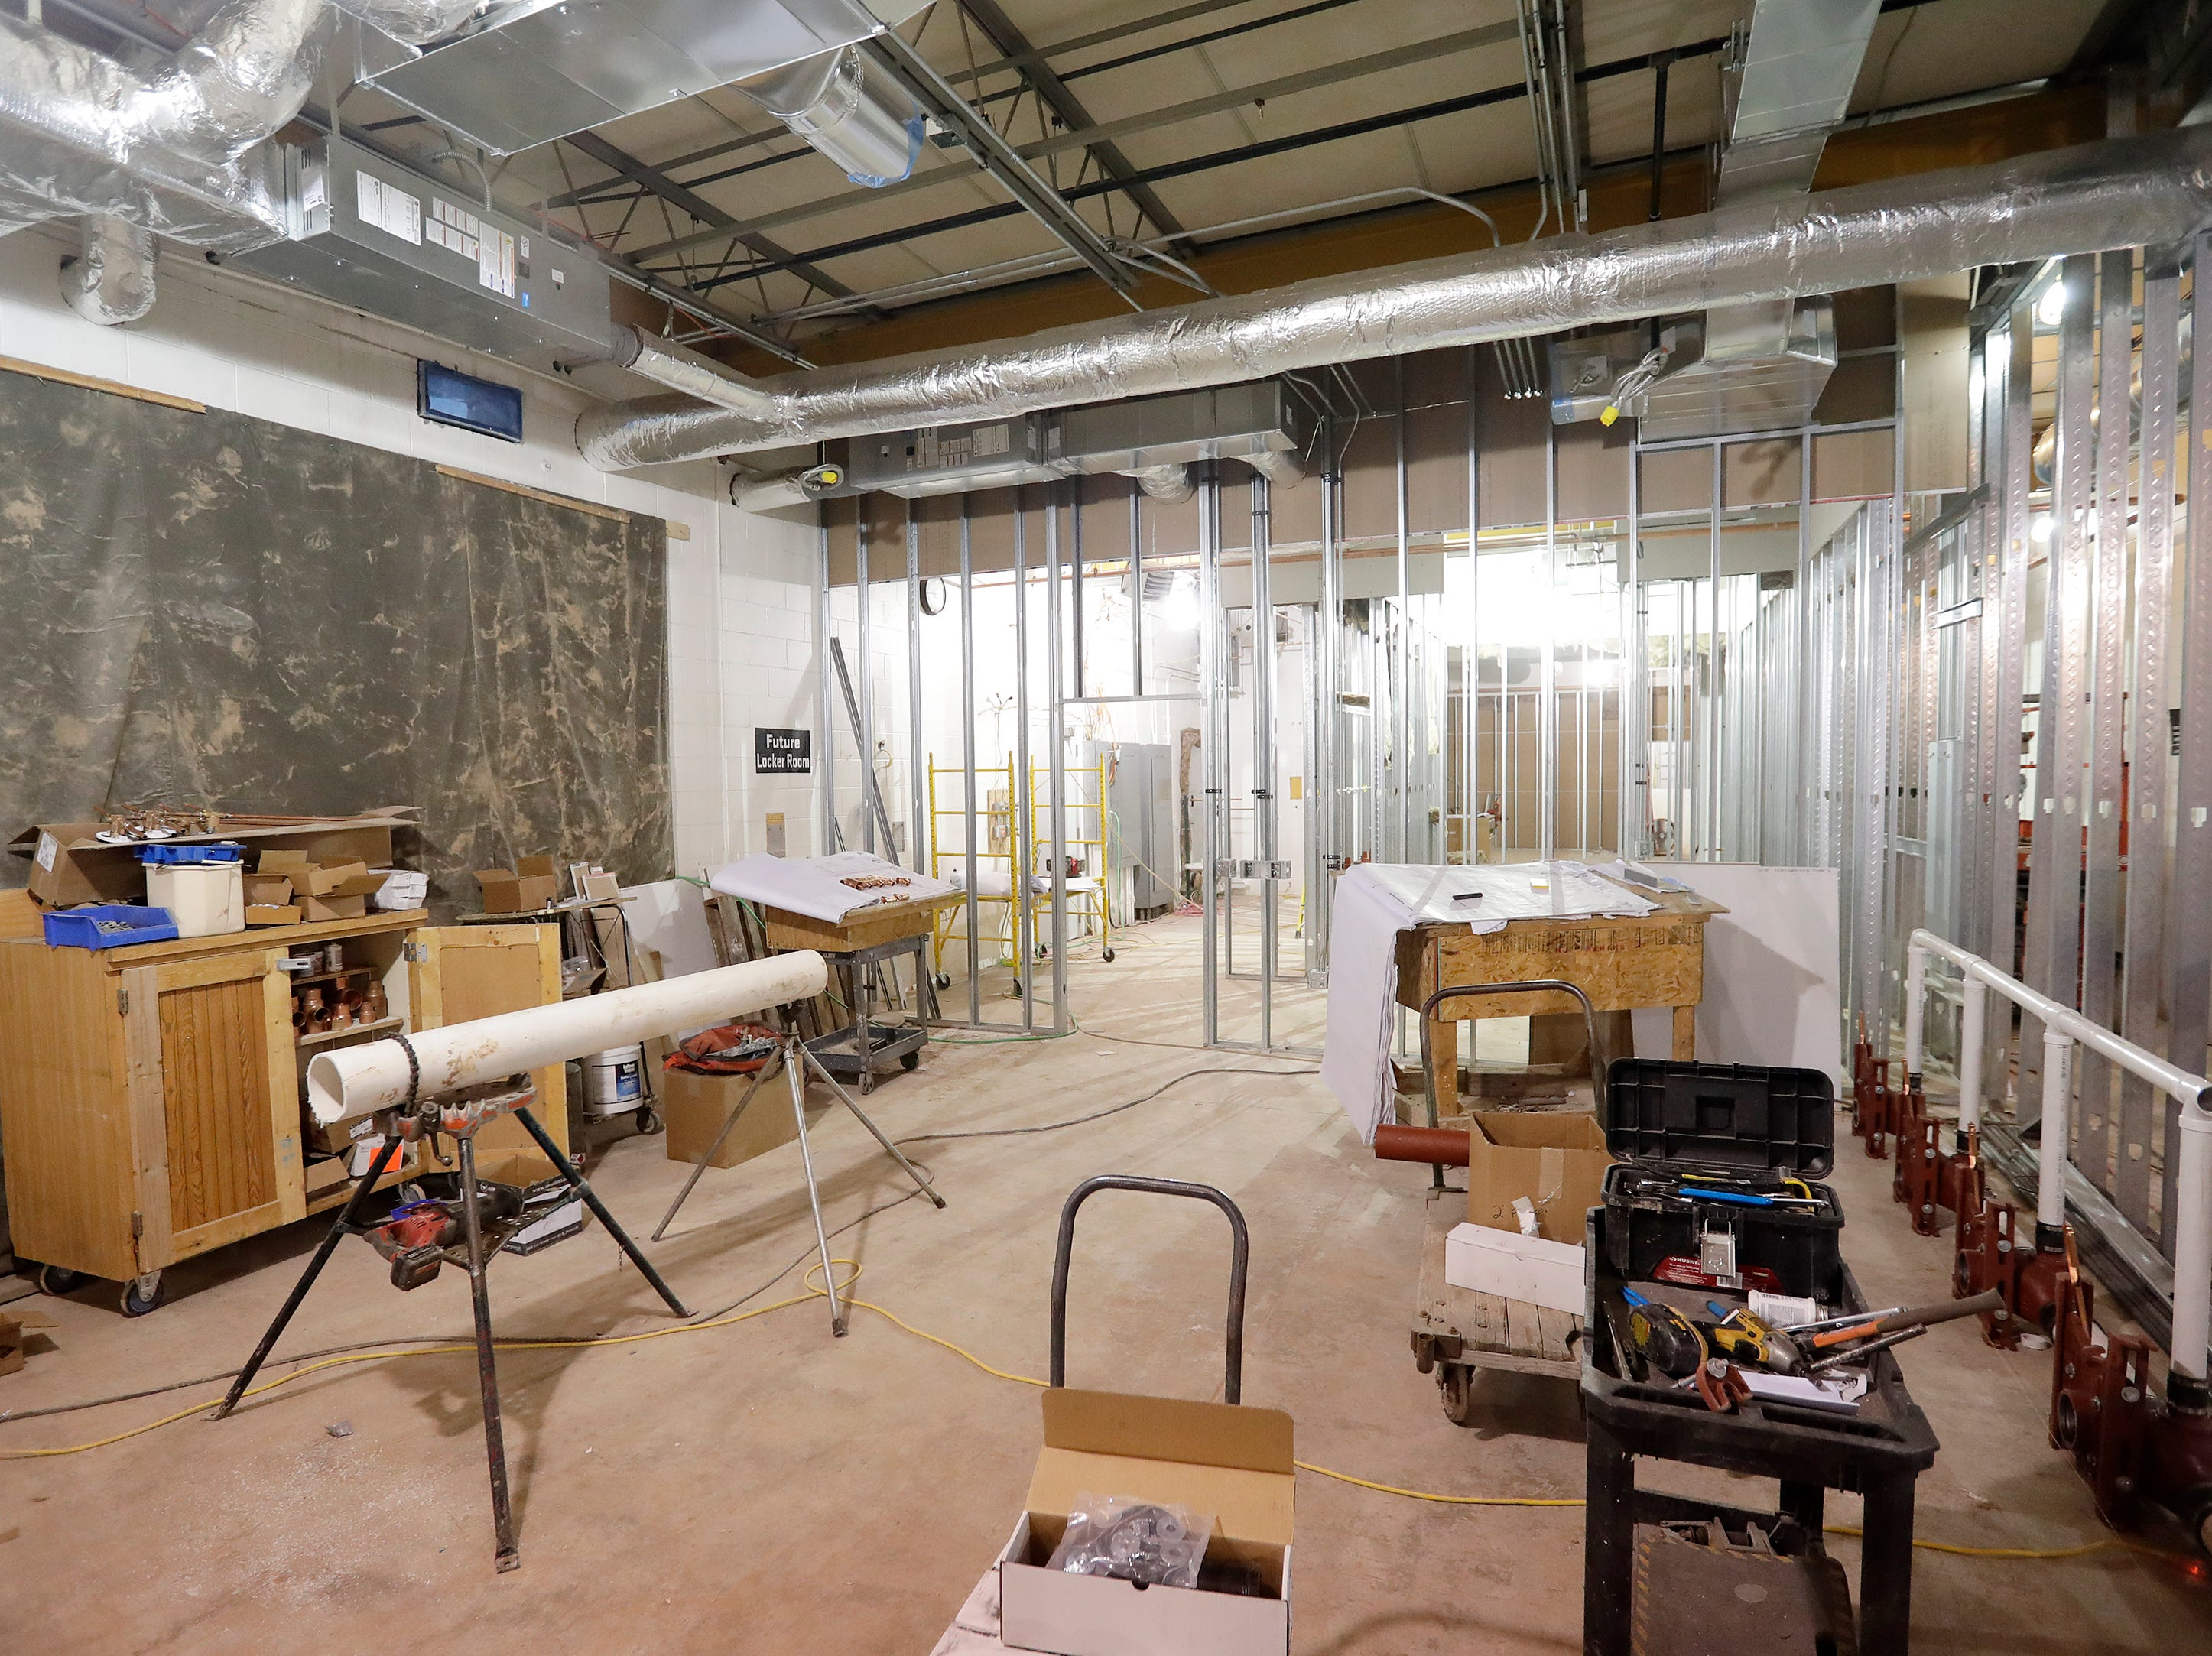 Construction for the locker rooms at Capital Credit Union Park is shown on Wednesday, January 16, 2019 in Ashwaubenon, Wis. The stadium is set to open this spring and will host the Green Bay Booyah baseball team in the Northwoods League and a United Soccer Leagues League 2 team.